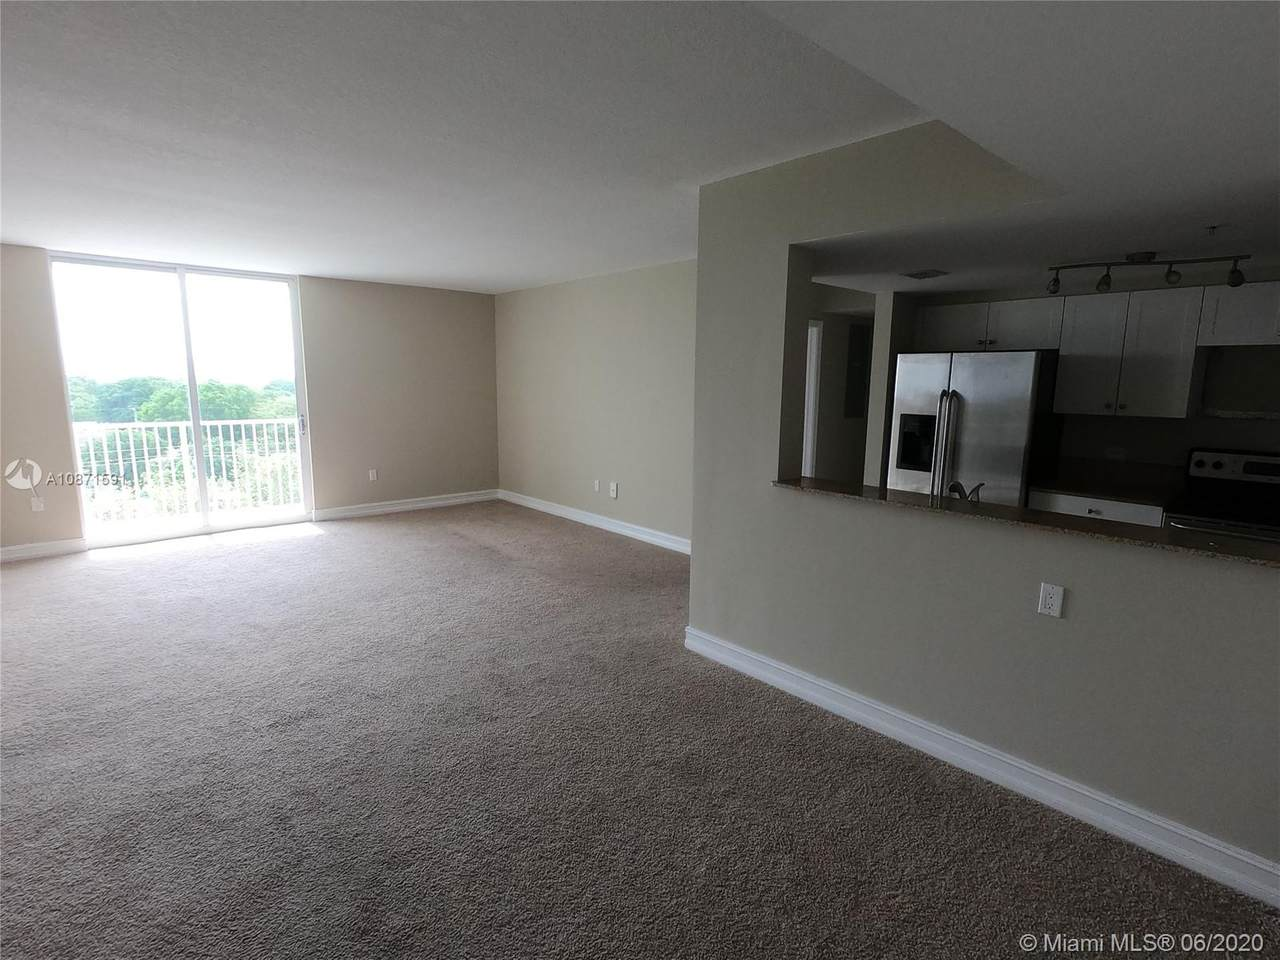 117 42nd Ave - Photo 1